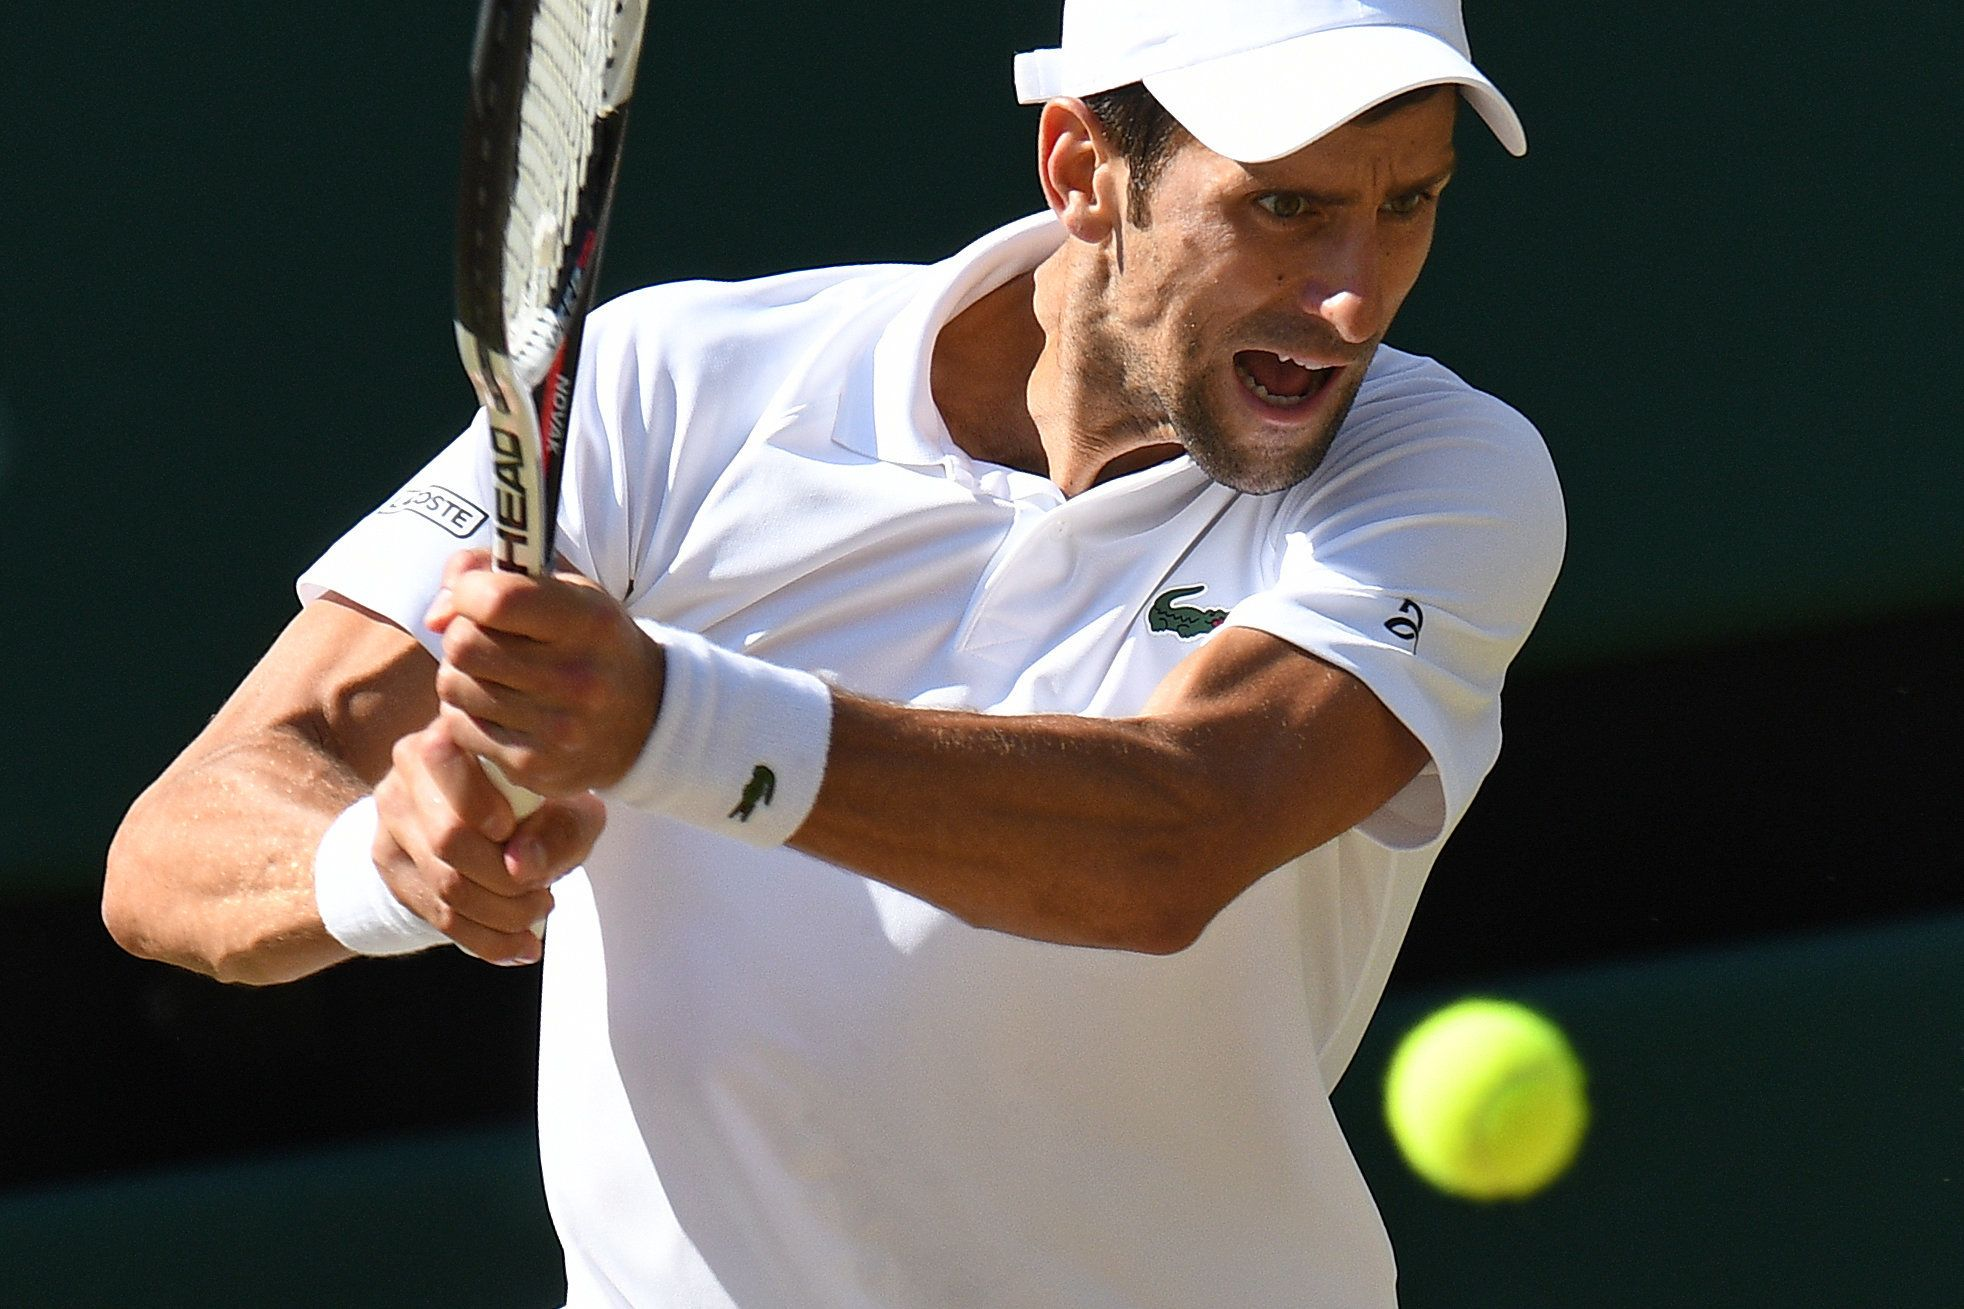 Serbia's Novak Djokovic returns to South Africa's Kevin Anderson in their men's singles final match on the thirteenth day of the 2018 Wimbledon Championships at The All England Lawn Tennis Club in Wimbledon, southwest London, on July 15, 2018. (Photo by Oli SCARFF / AFP) / RESTRICTED TO EDITORIAL USE        (Photo credit should read OLI SCARFF/AFP/Getty Images)